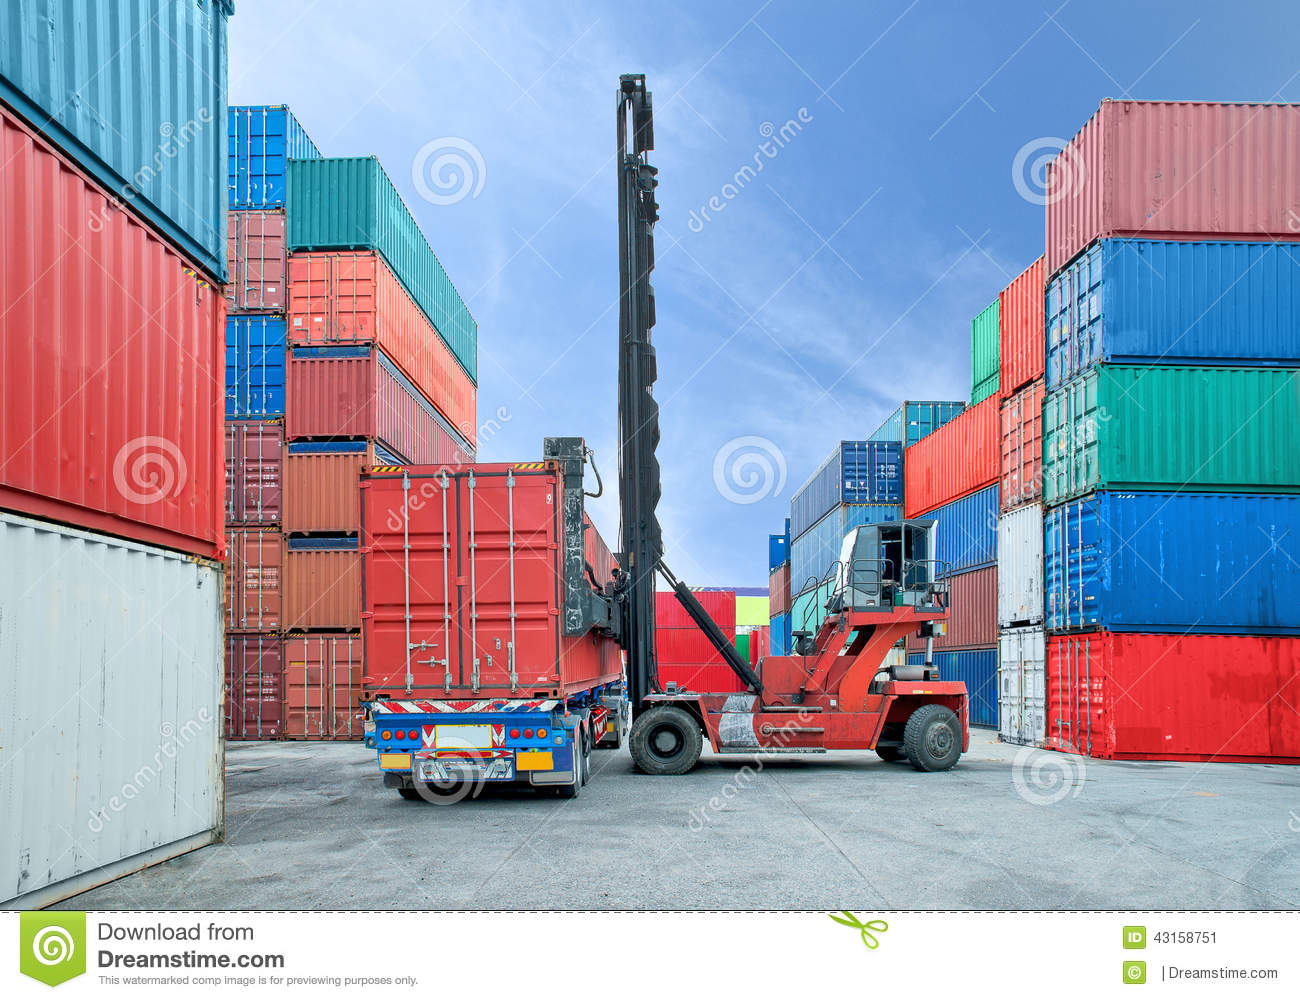 Forklift handling container box loading to truck in dock